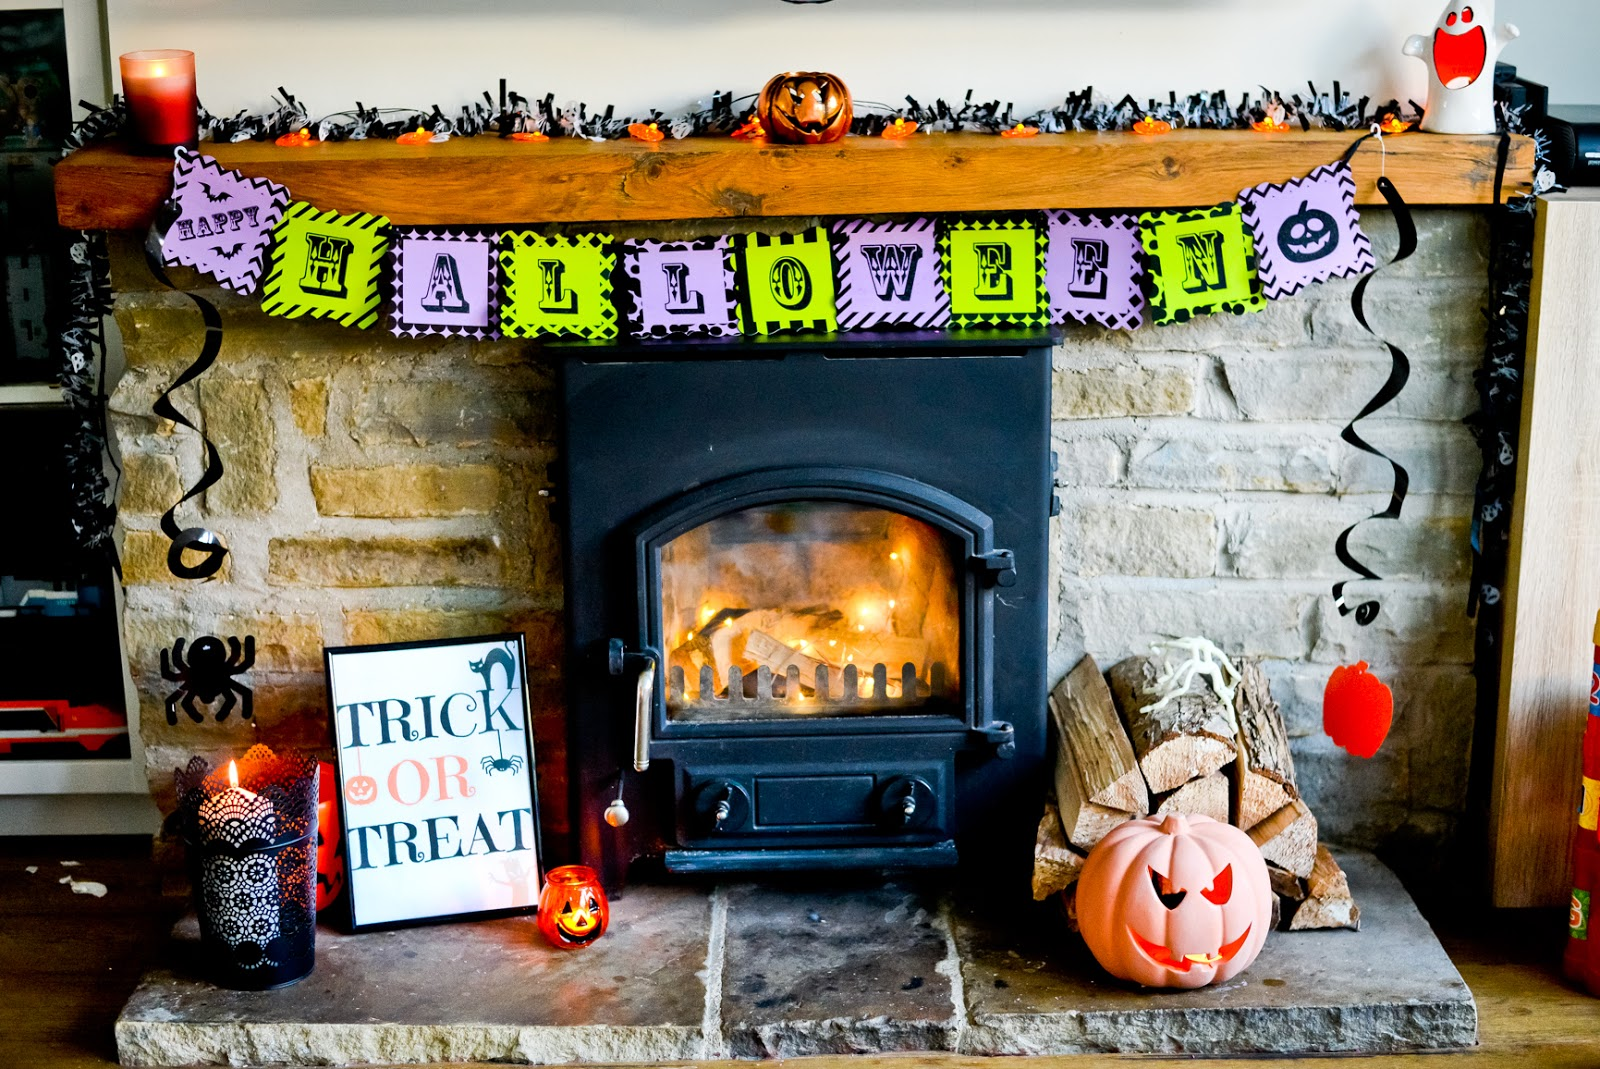 halloween home decor, halloween decor, halloween fireplace, halloween mantelpiece,